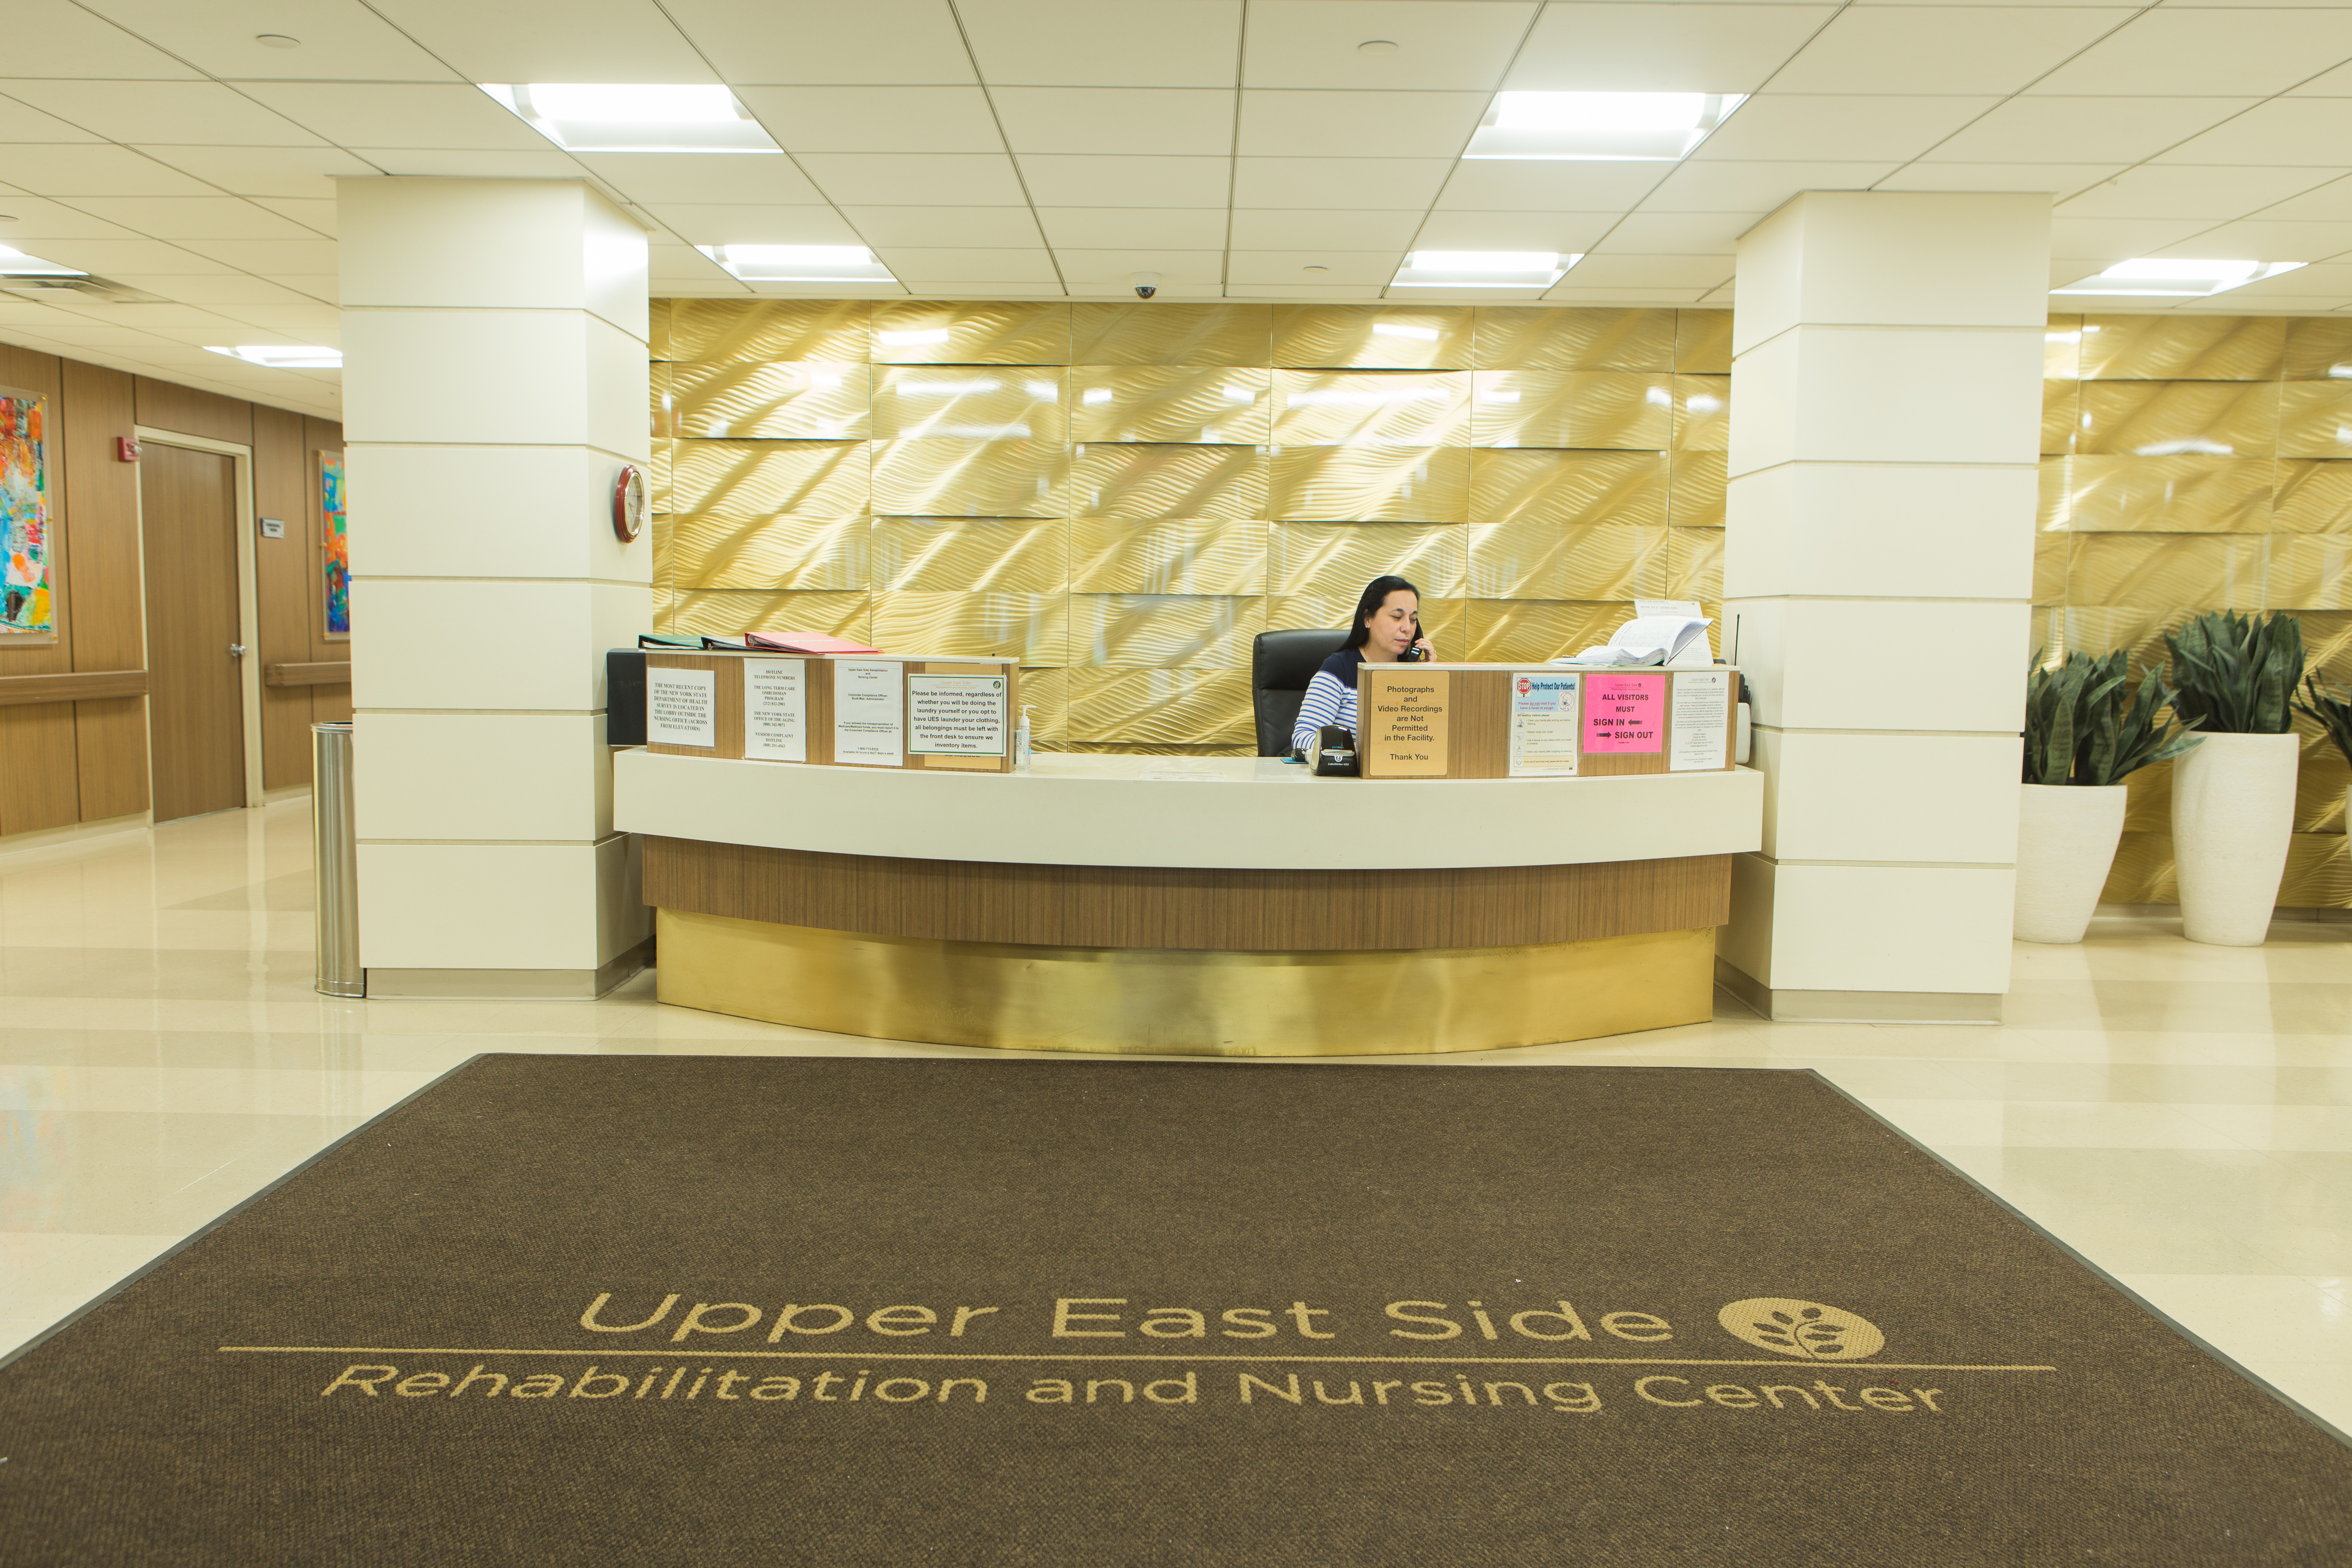 Upper east side rehabilitation and nursing center private solutioingenieria Image collections